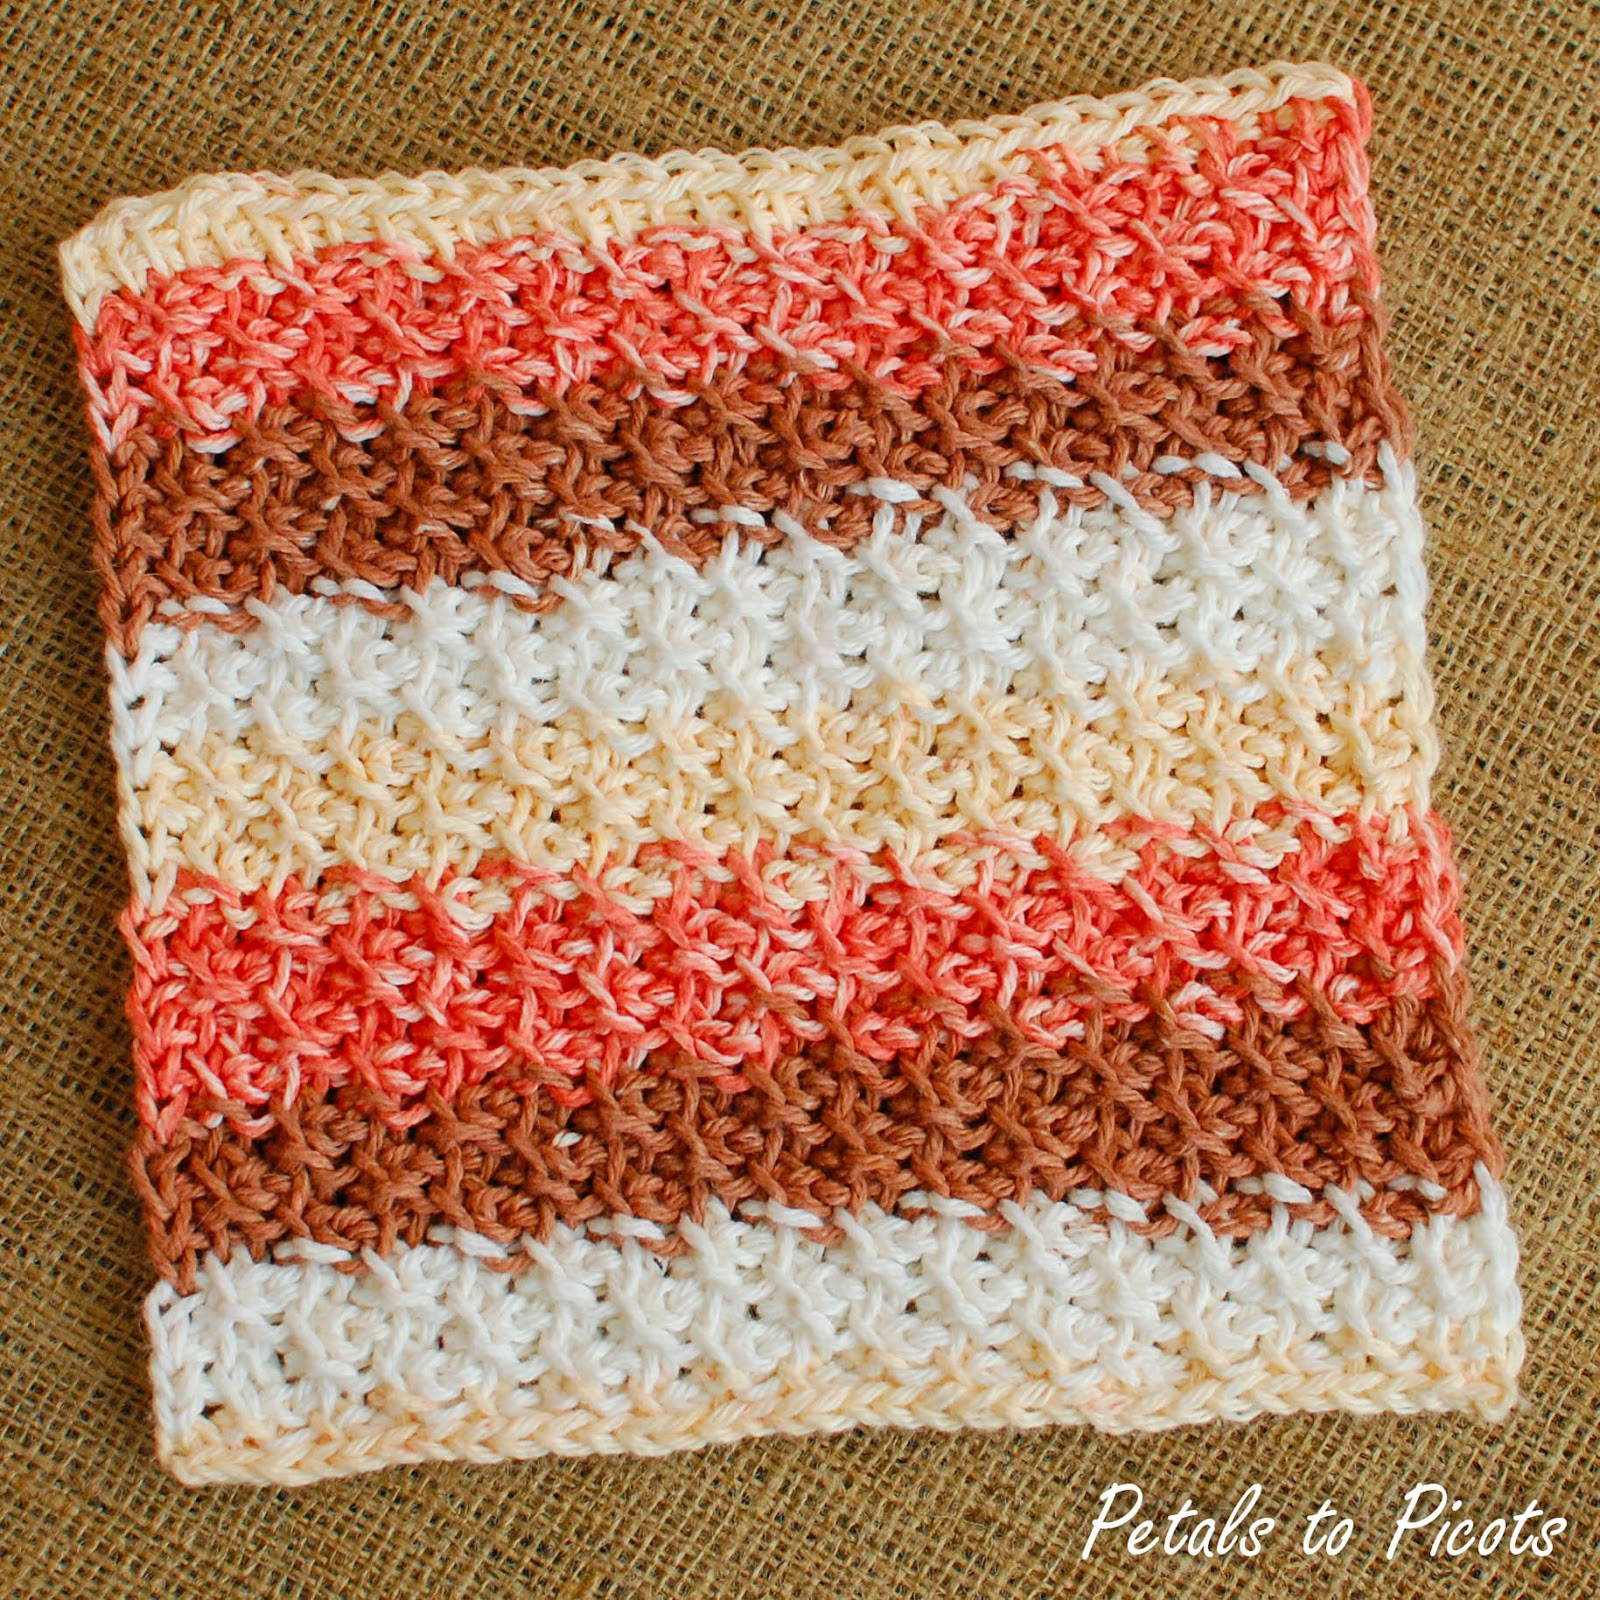 Fresh Free Tunisian Stitch Pattern From the New Tunisian Crochet Free Tunisian Crochet Patterns Of Beautiful 42 Pics Free Tunisian Crochet Patterns